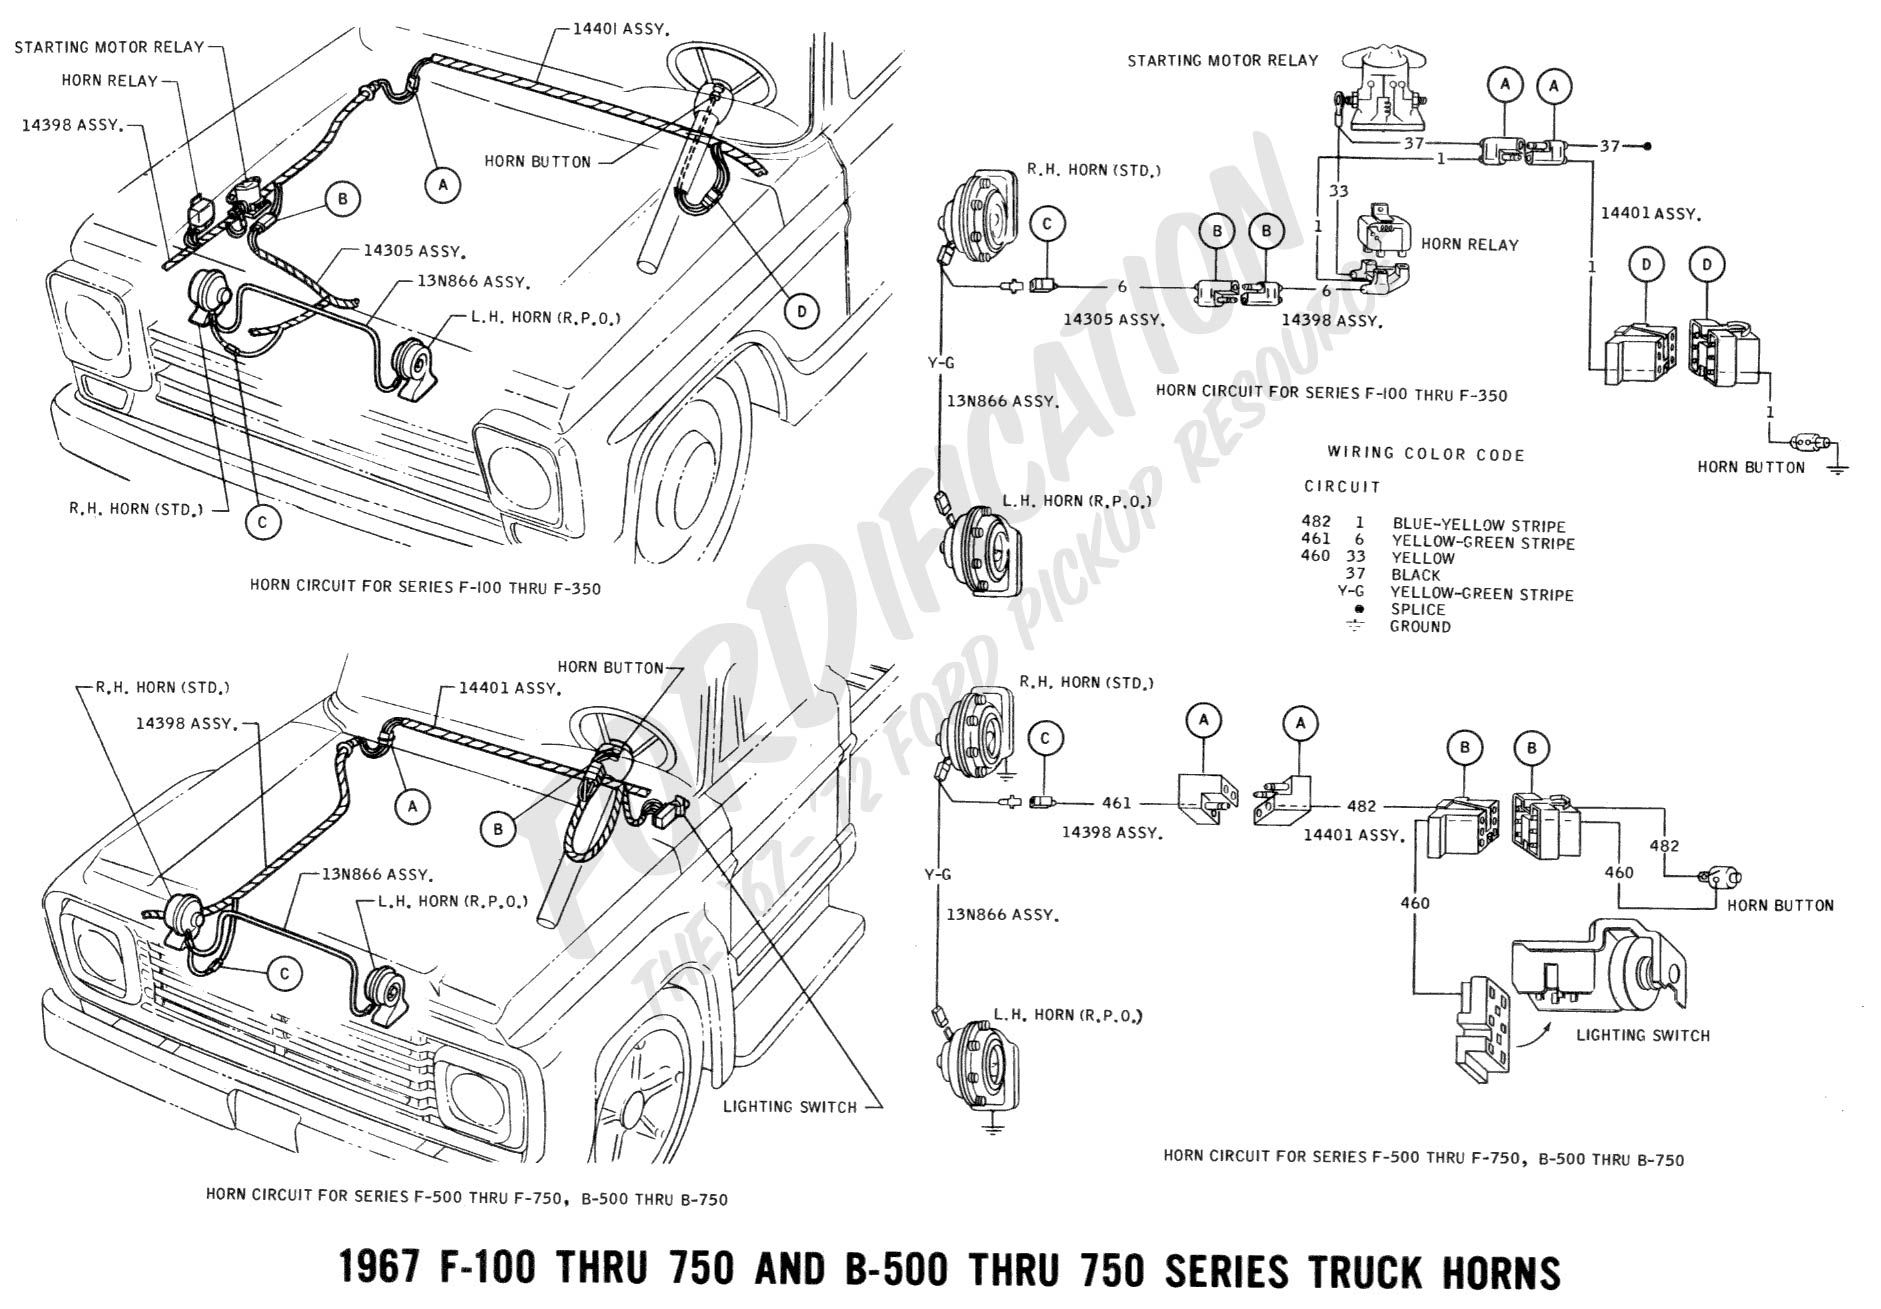 1982 chevy truck courtesy light wiring diagram